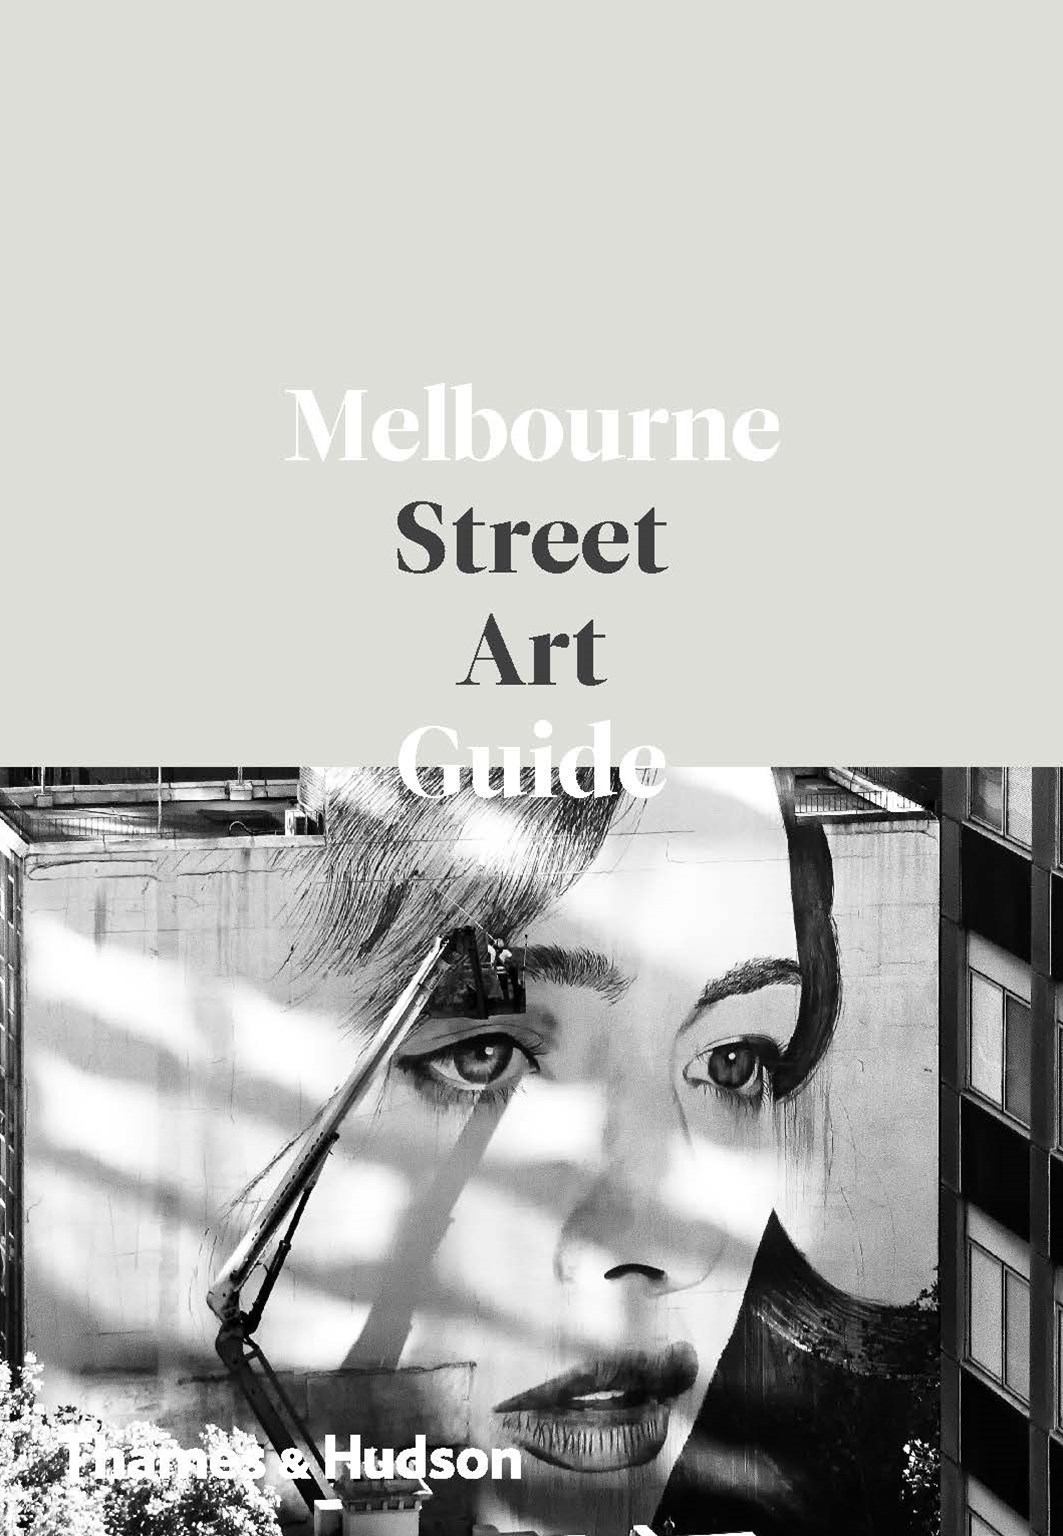 The Melbourne Street Art Guide